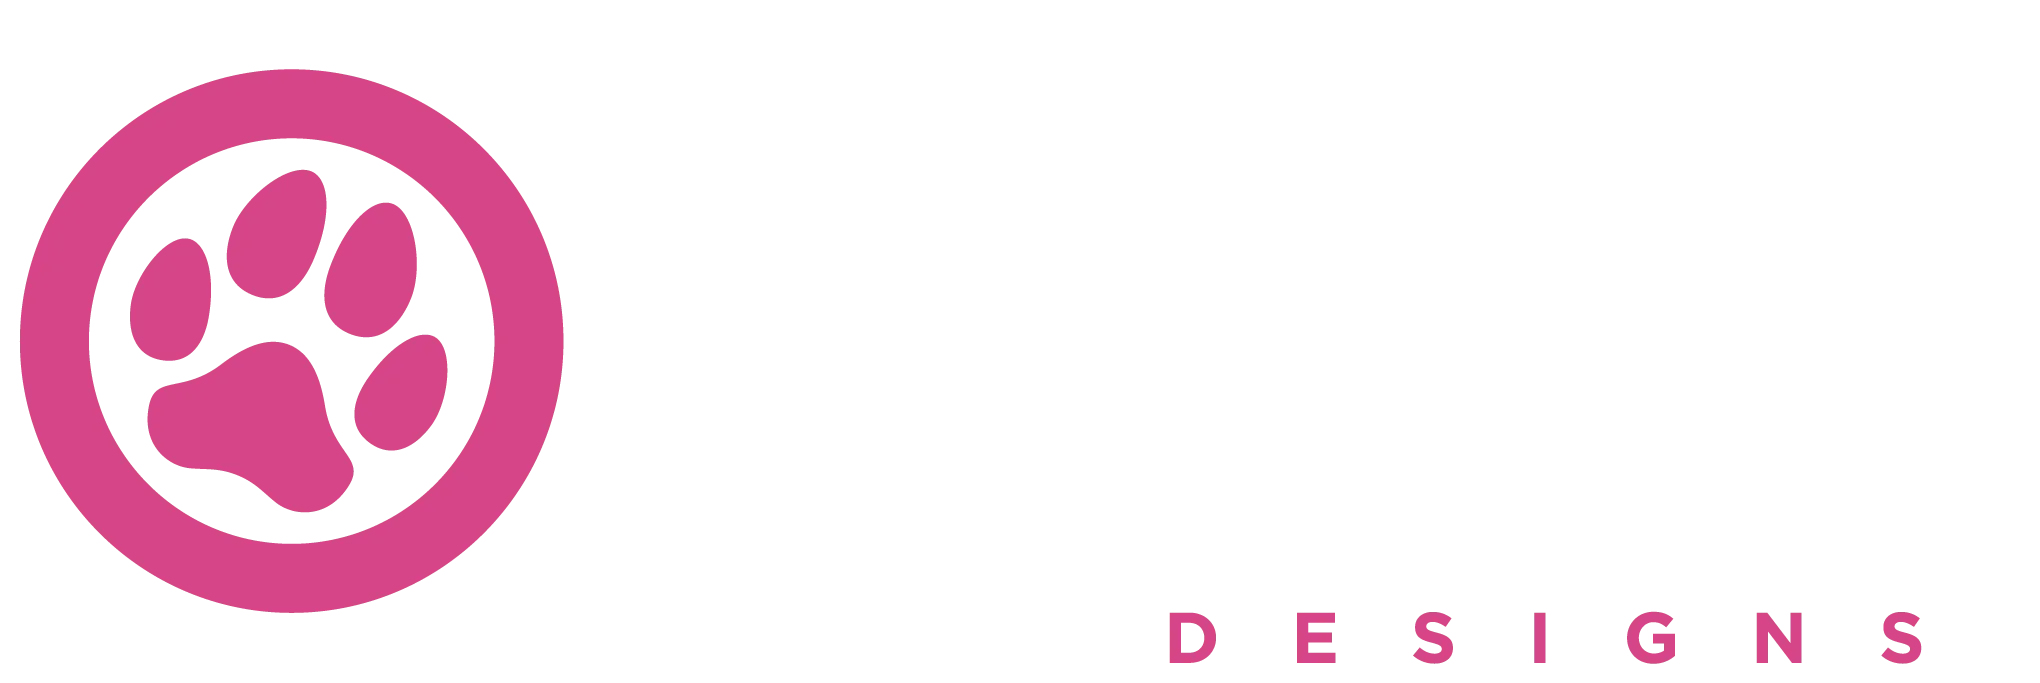 Woof Designs - New Logo - Web Designer